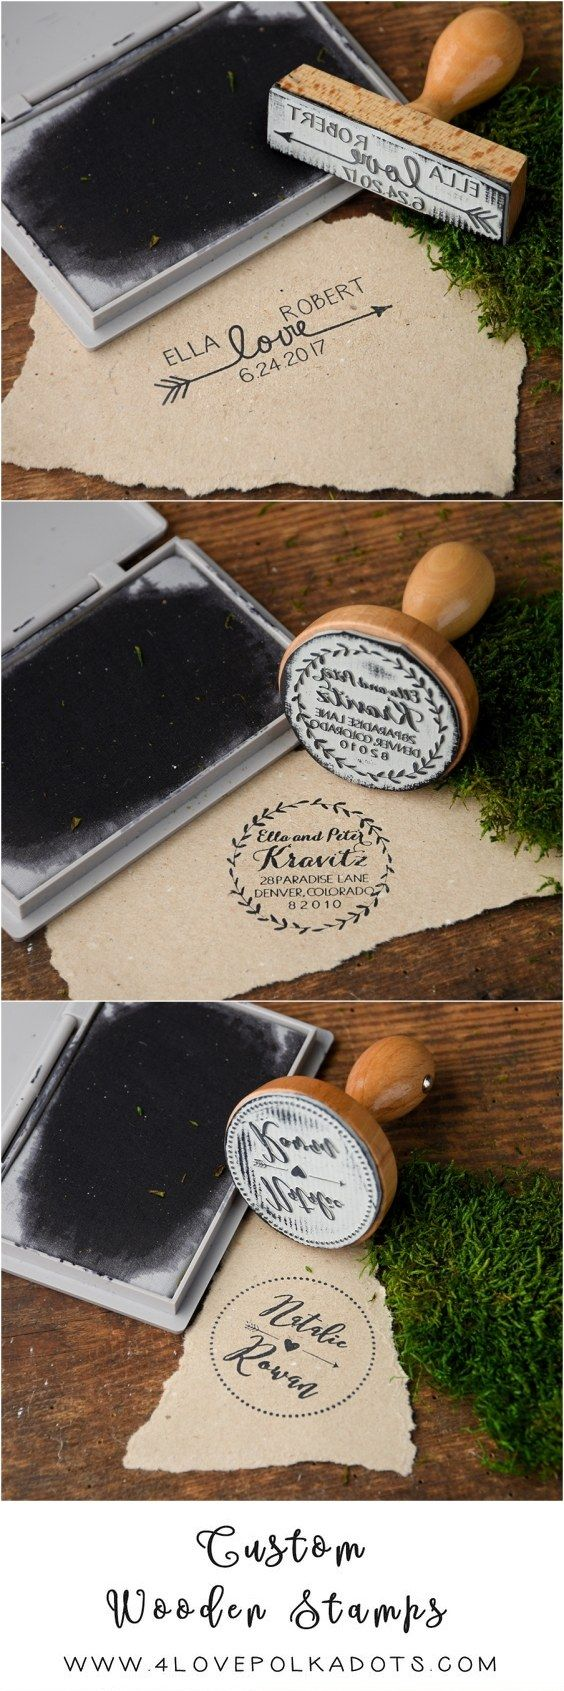 Wooden wedding custom stamps –personalized with your names and date 4lovepolkadots #weddingstamp #wood